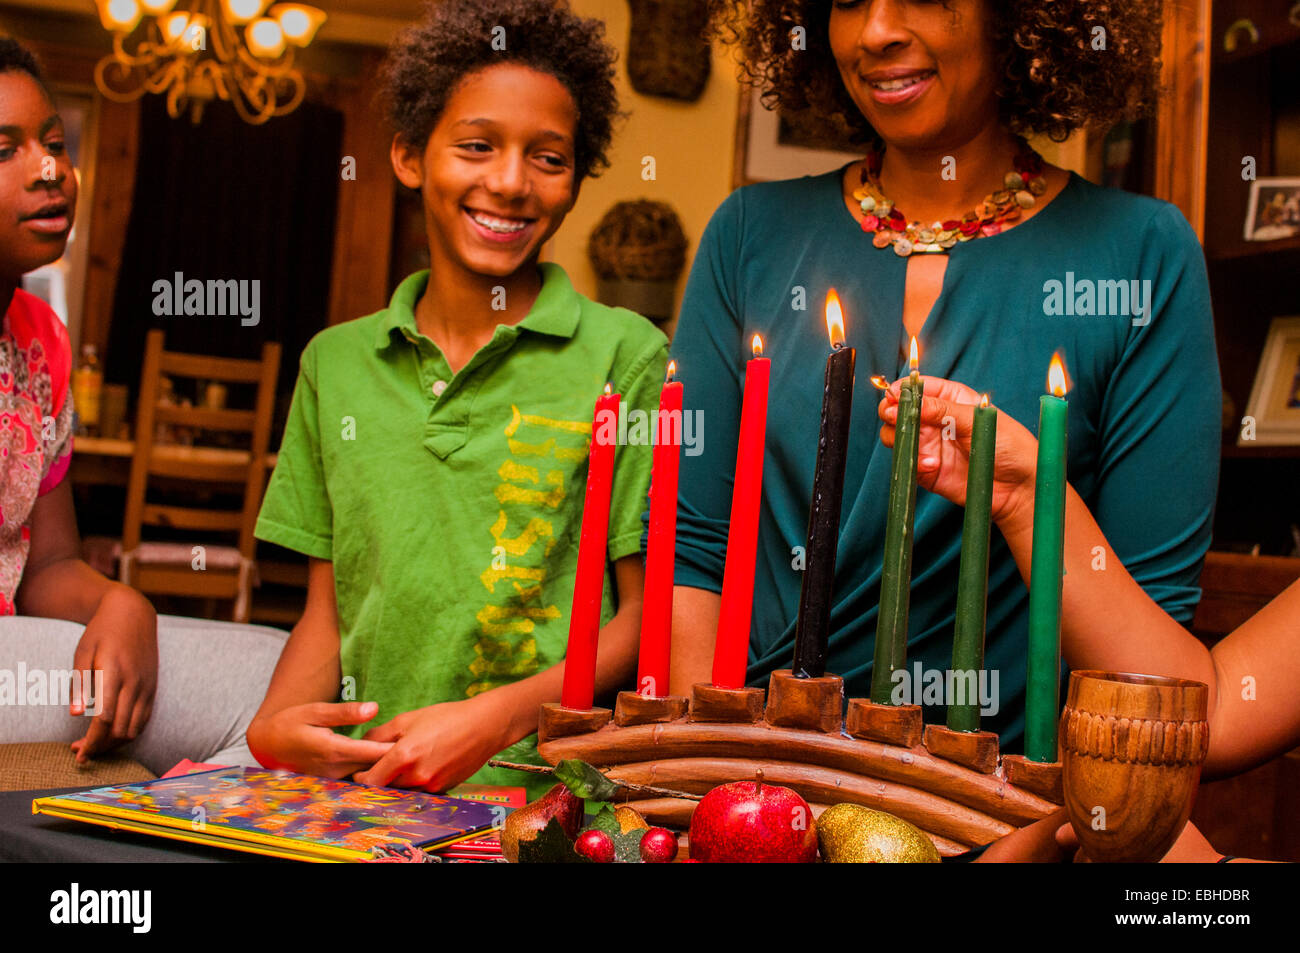 Family lighting kinara candles, celebrating Kwanzaa - Stock Image